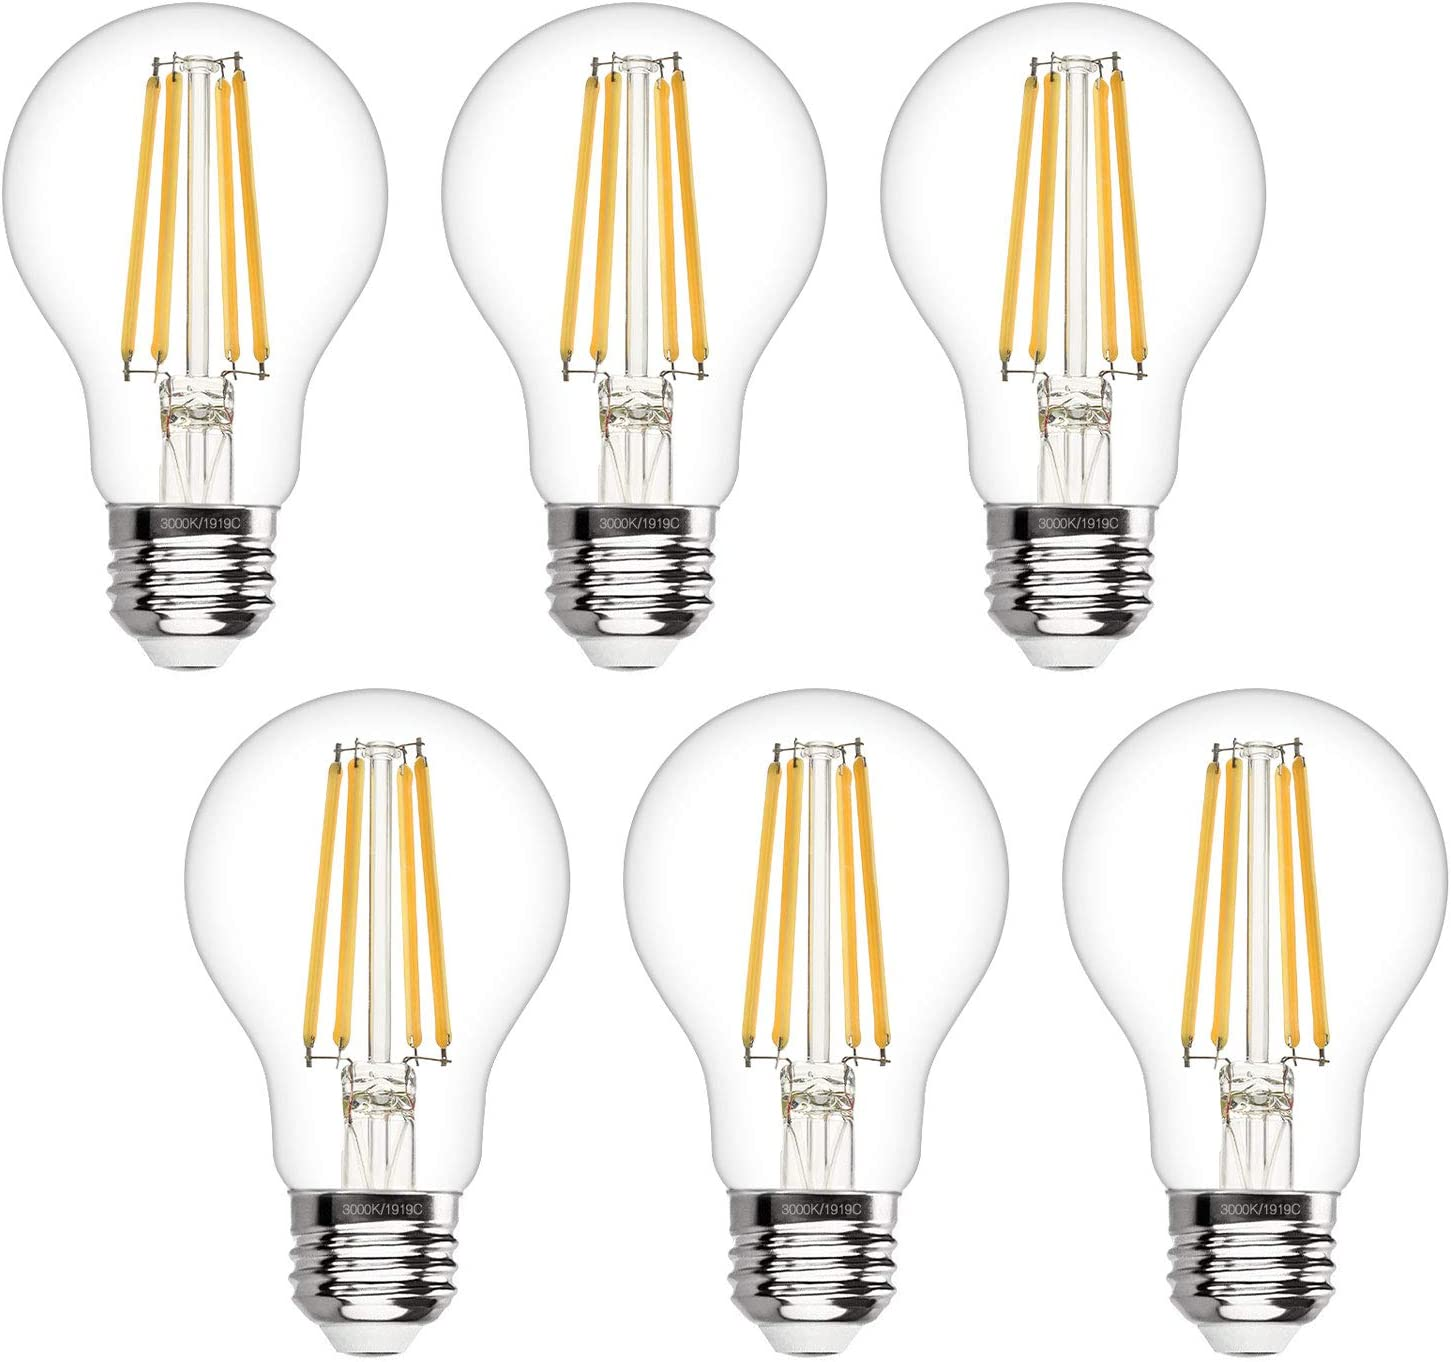 Boncoo A19 LED Edison Bulb Dimmable 6W LED Filament Light Bulbs 60W Incandescent Equivalent Led Vintage Bulb 3000K Soft White 620LM E26 Medium Base Decorative Clear Glass for Home, Office, 6 Pack